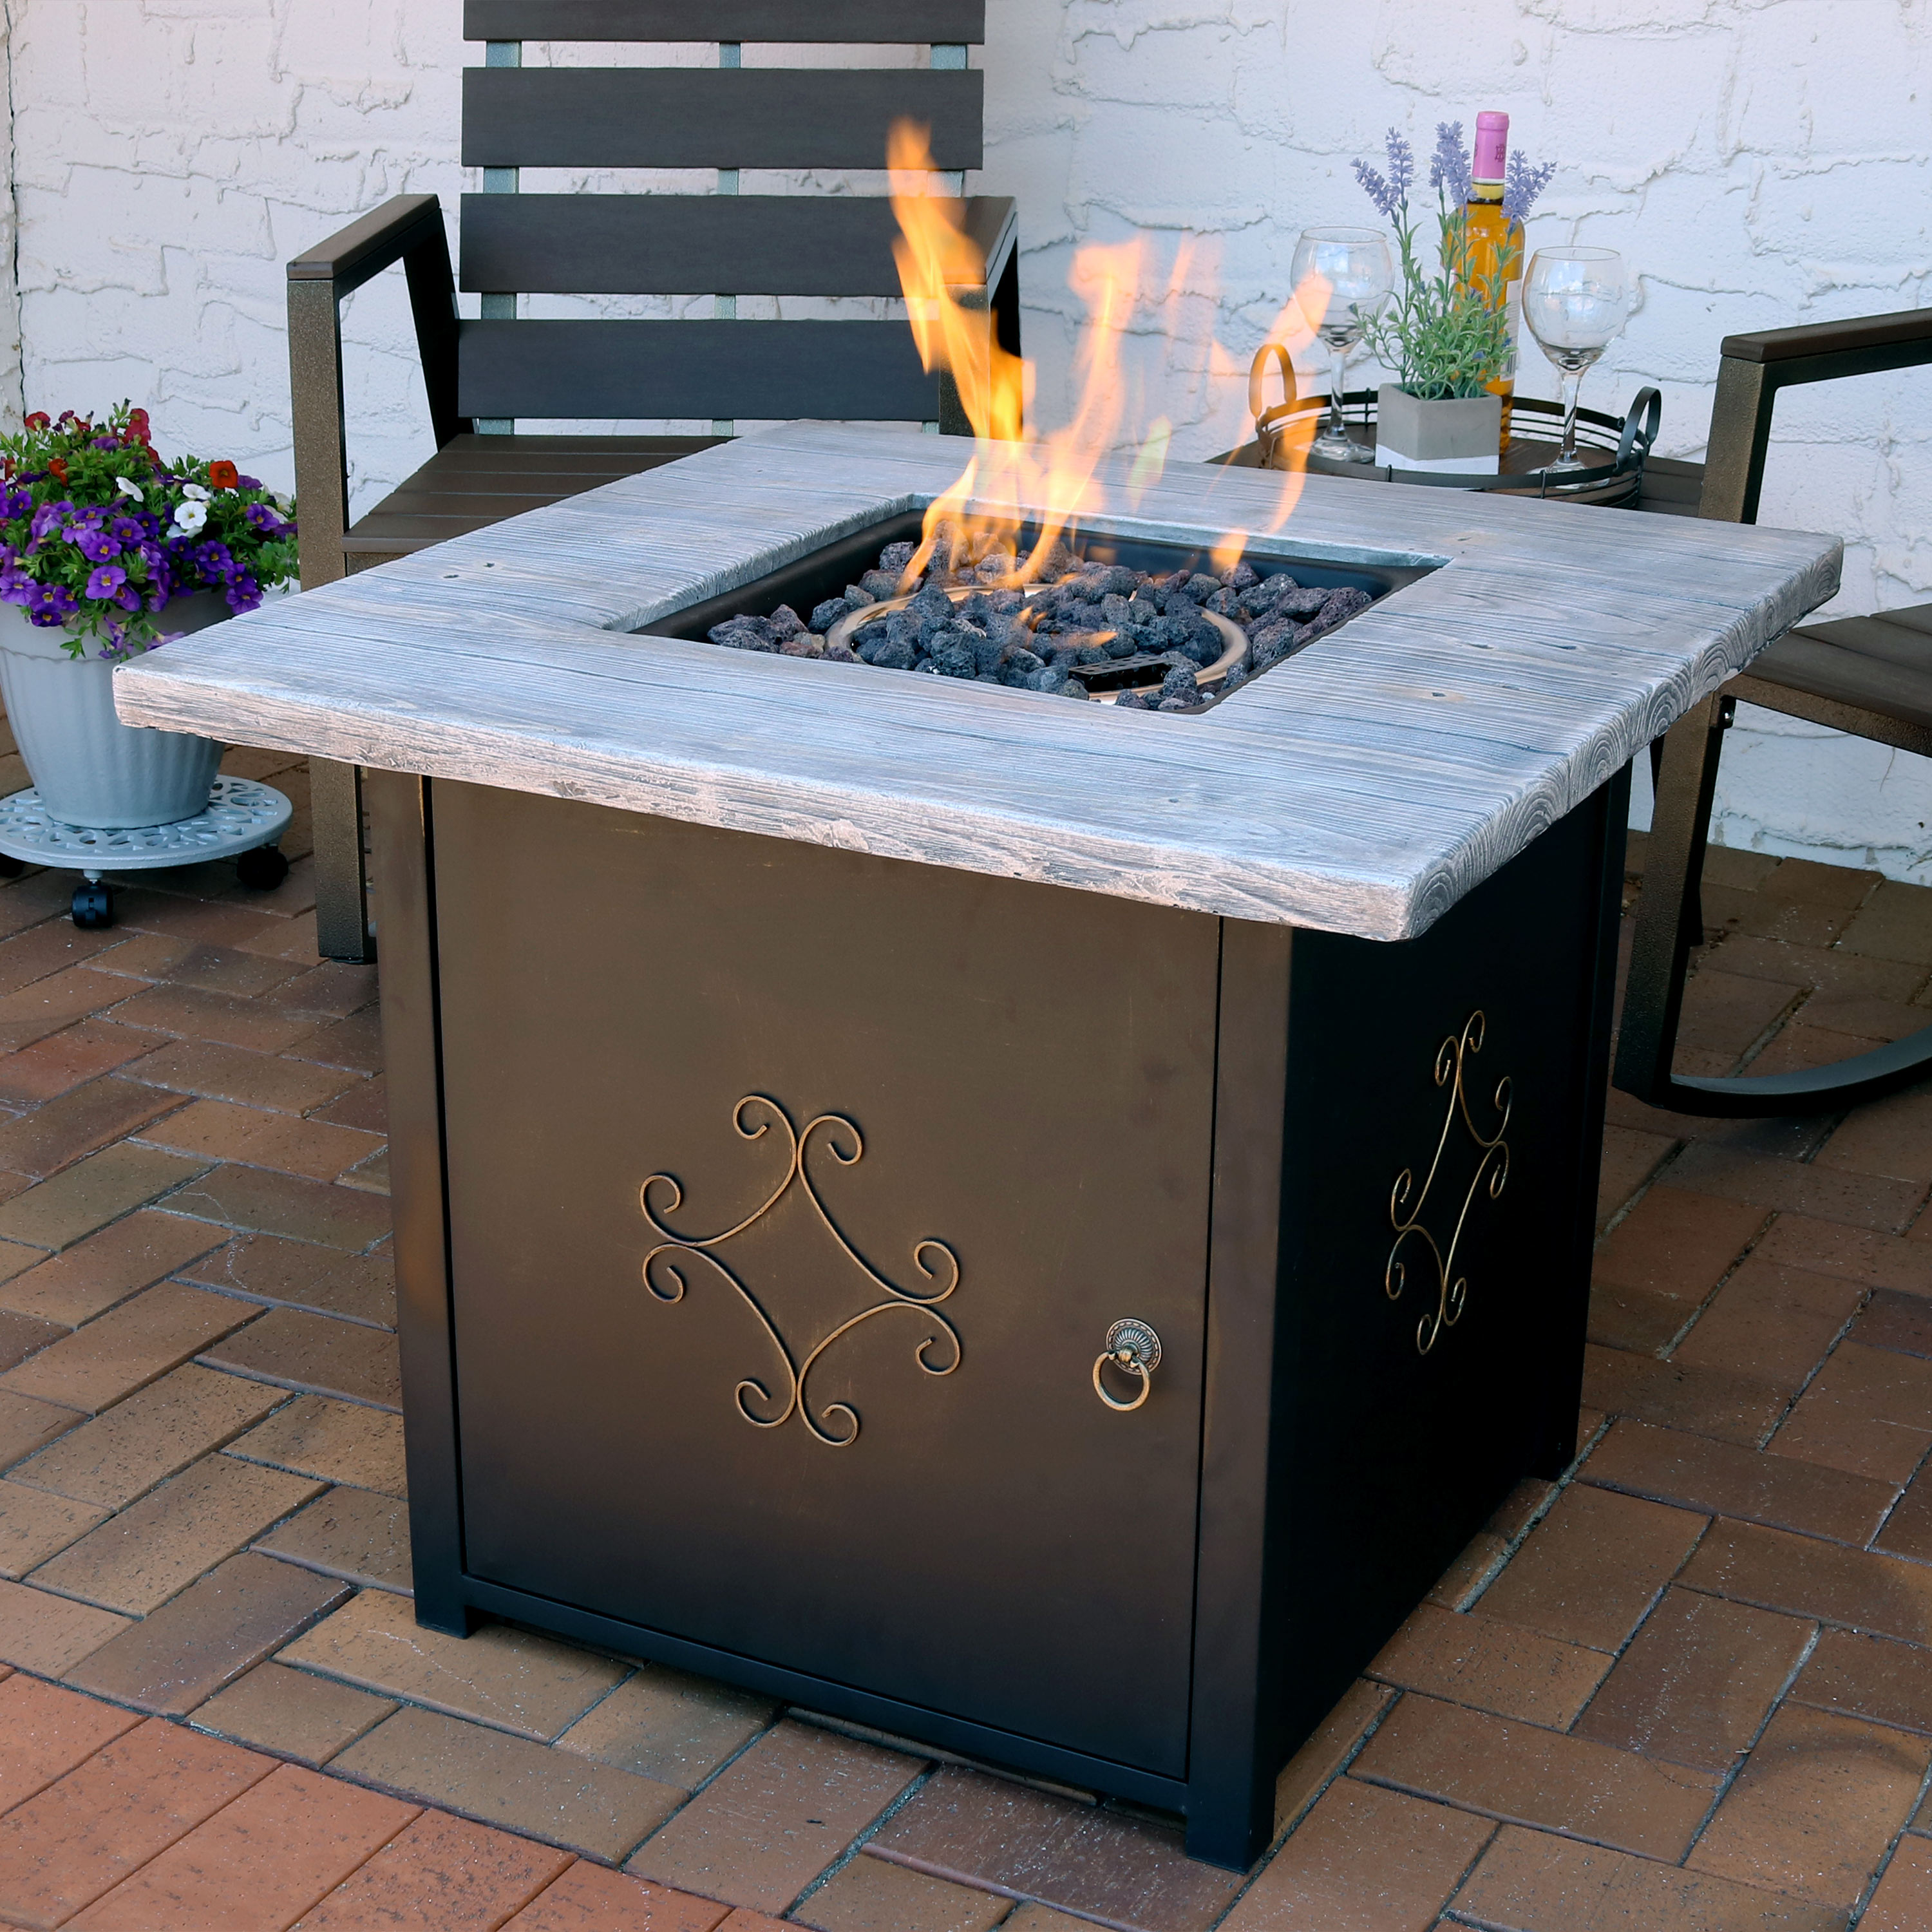 Sunnydaze Square Propane Gas Fire Pit Table with Lava Rocks - 30-Inch